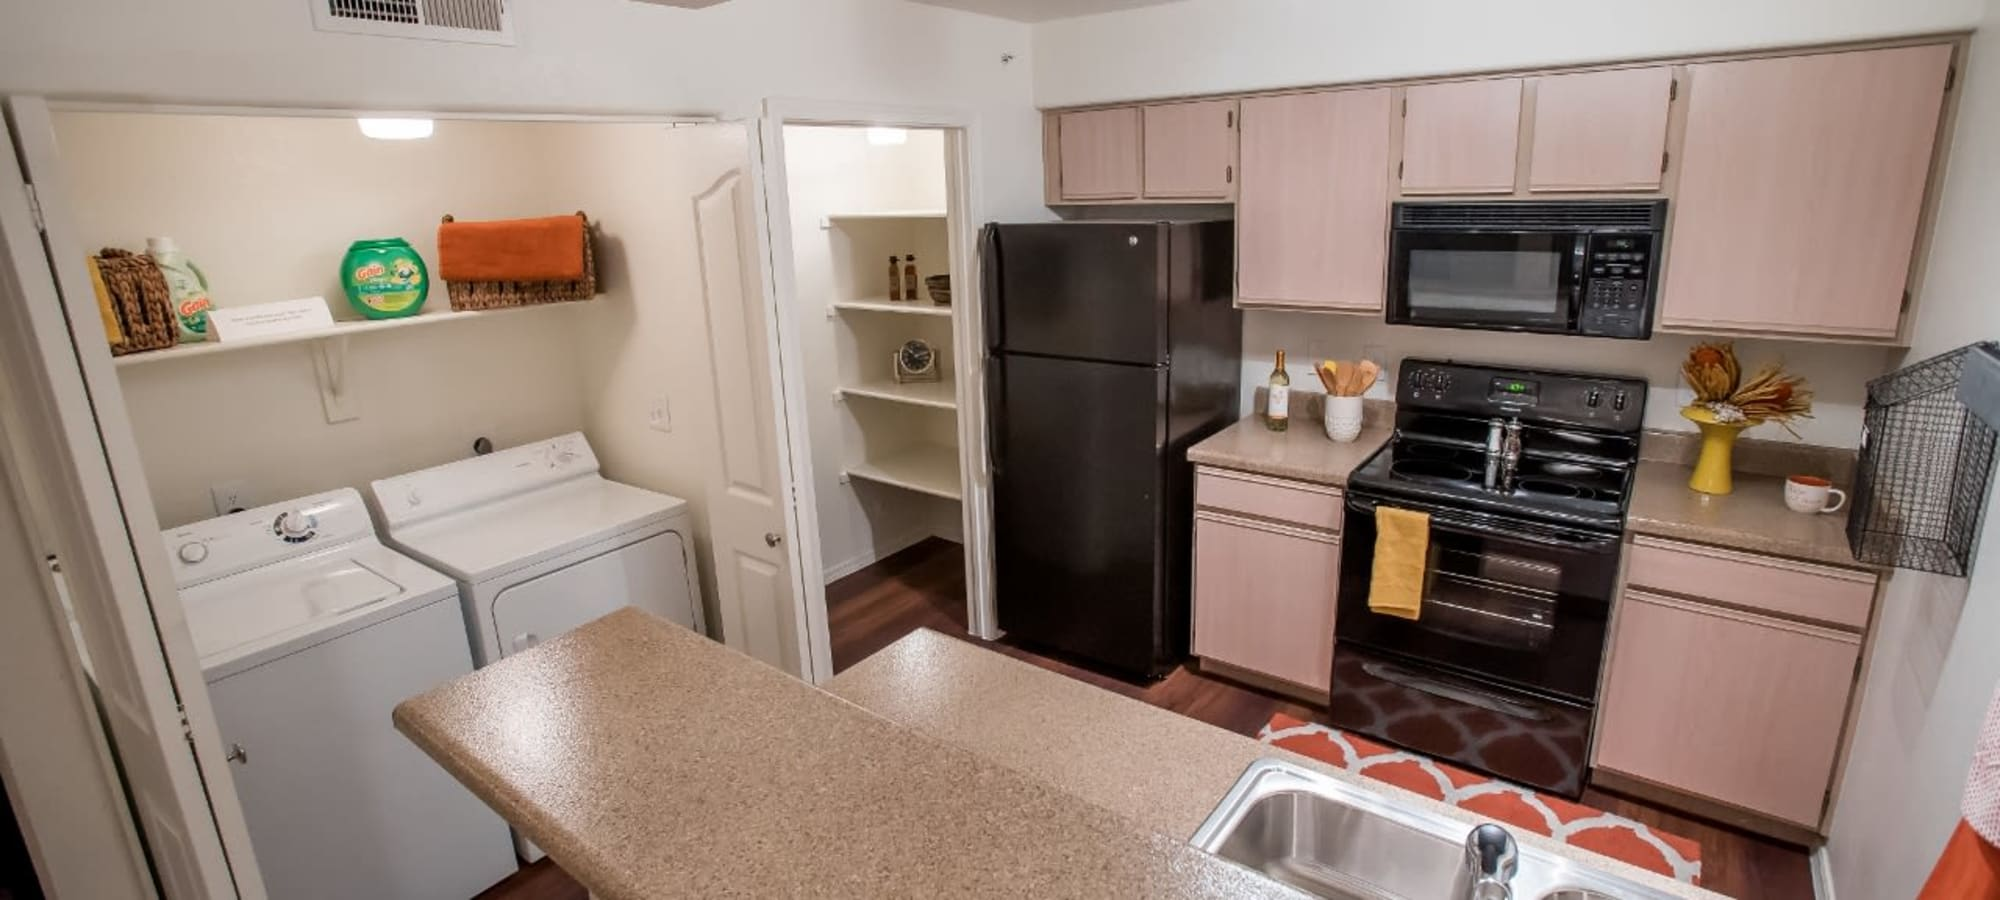 Kitchen and laundry room at The Palms on Scottsdale in Tempe, Arizona